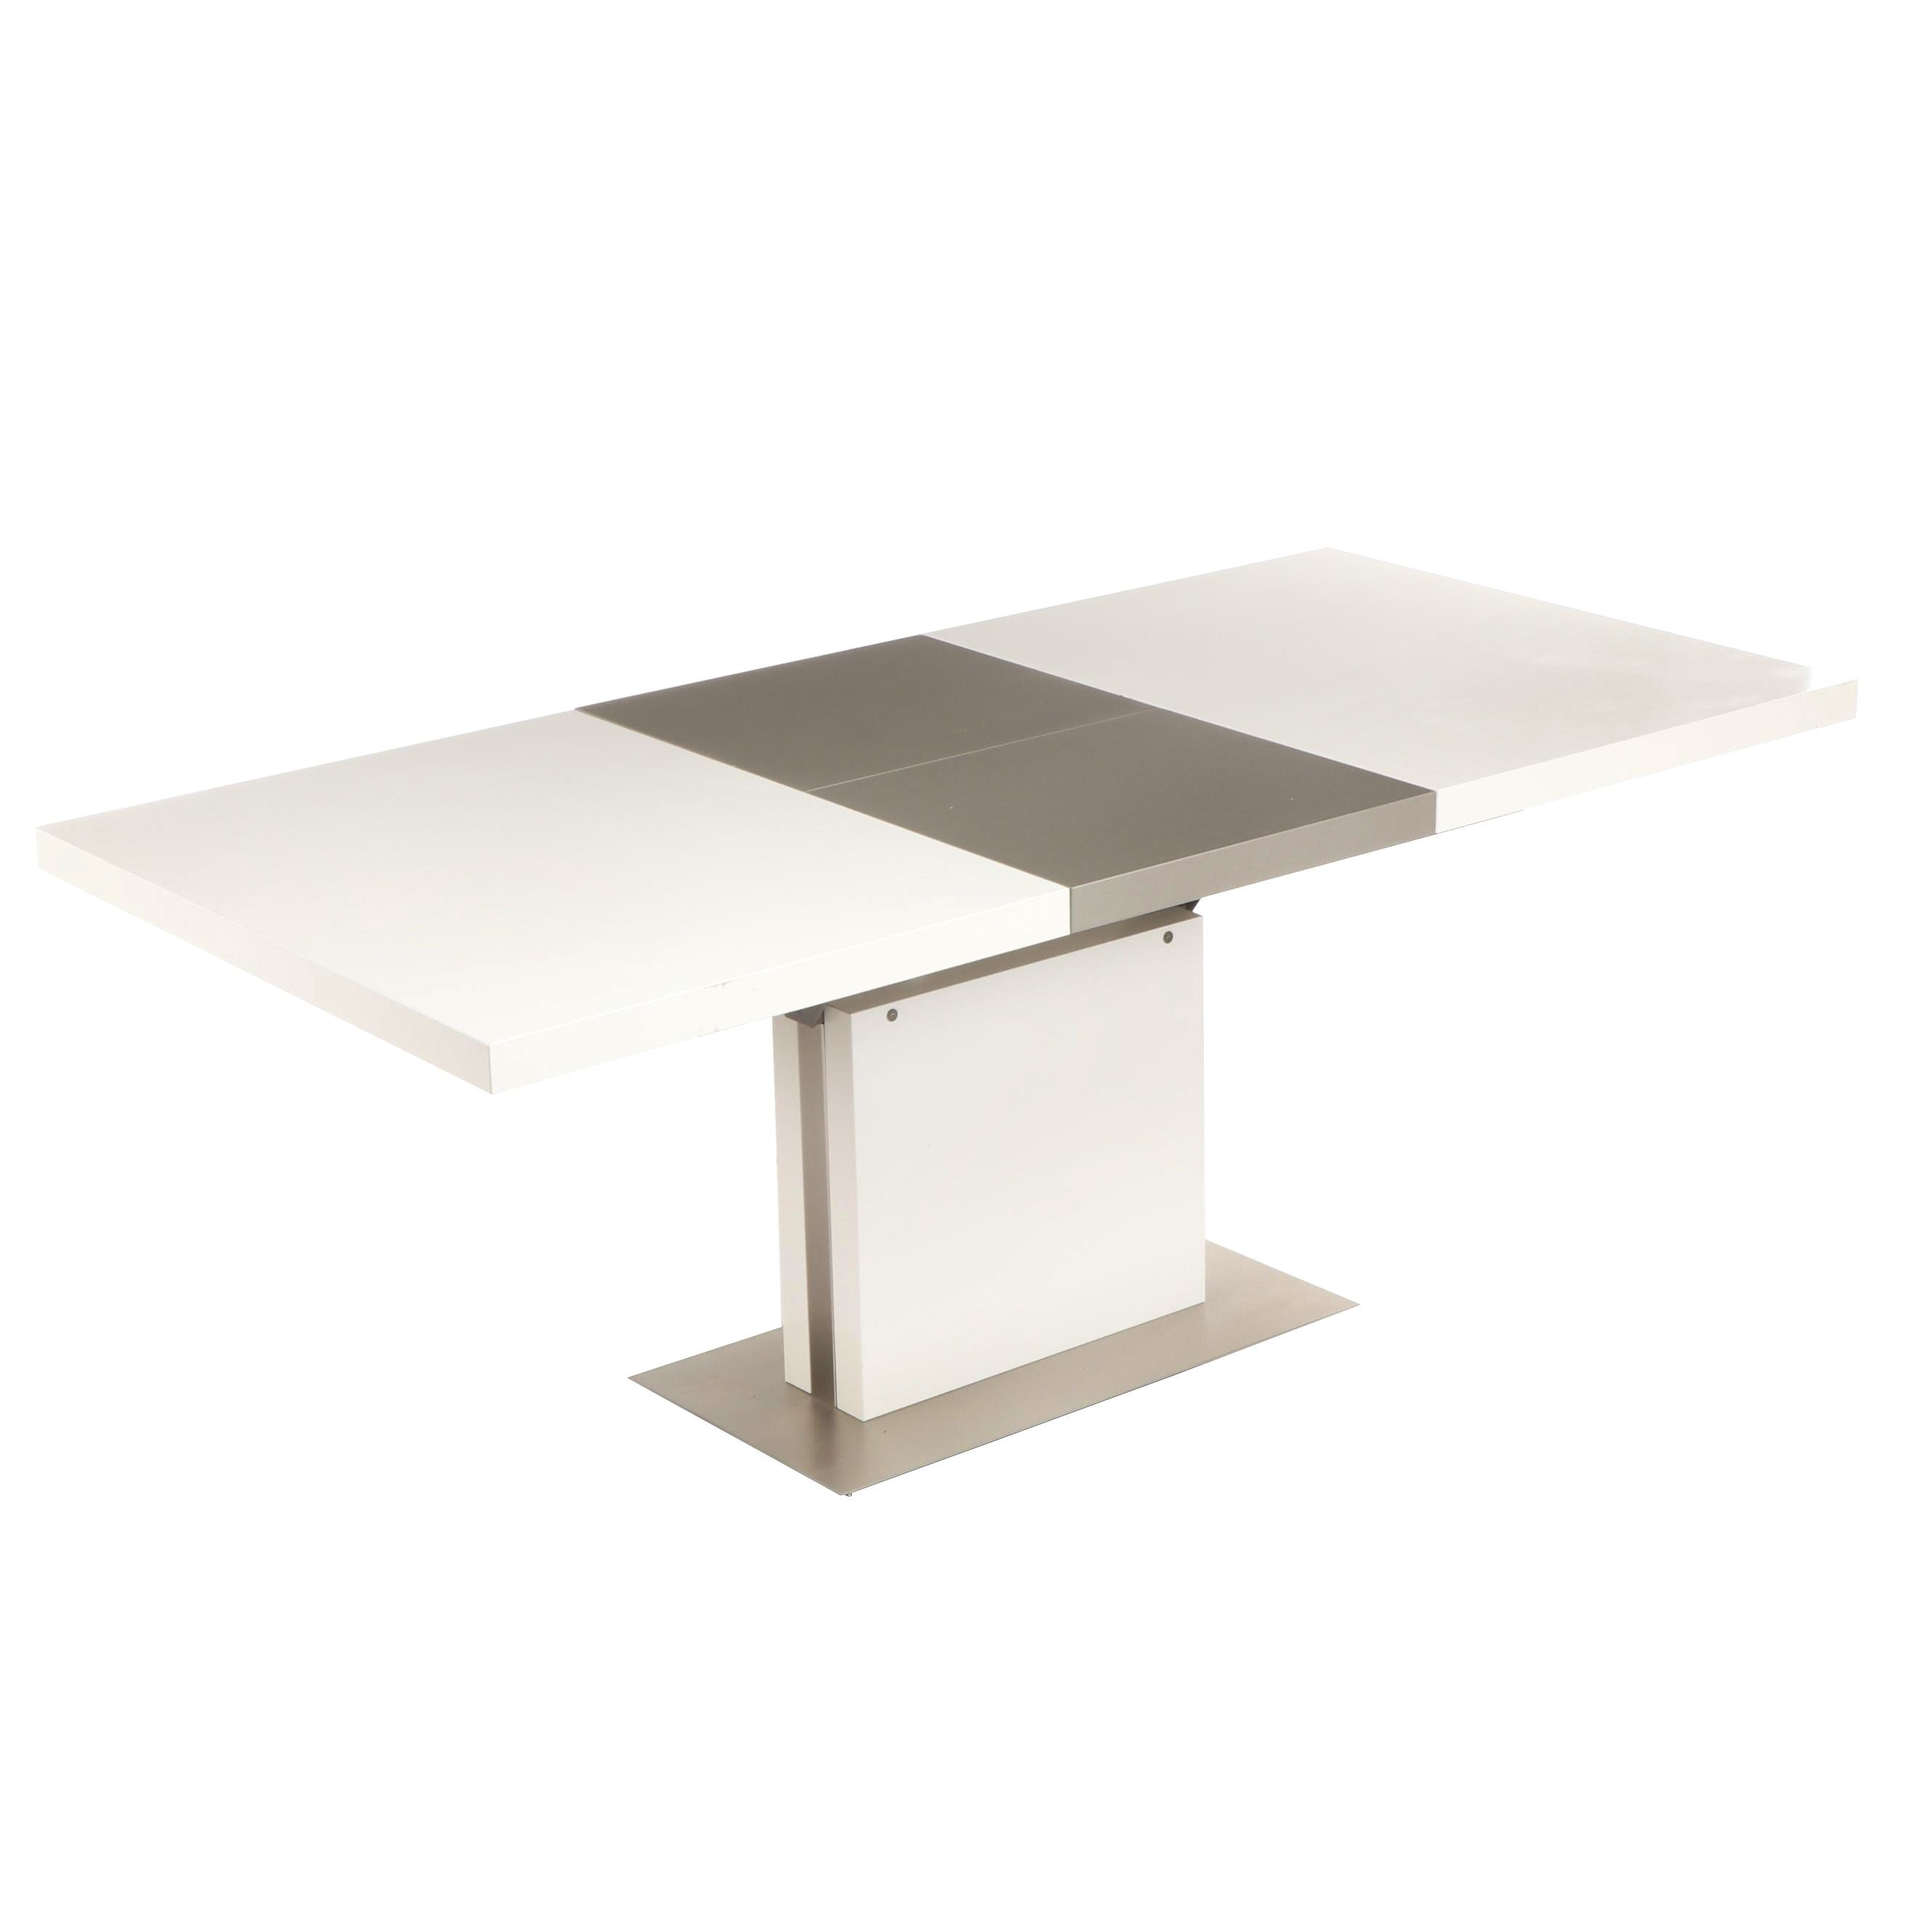 Contemporary Modern White and Gray Expanding Table